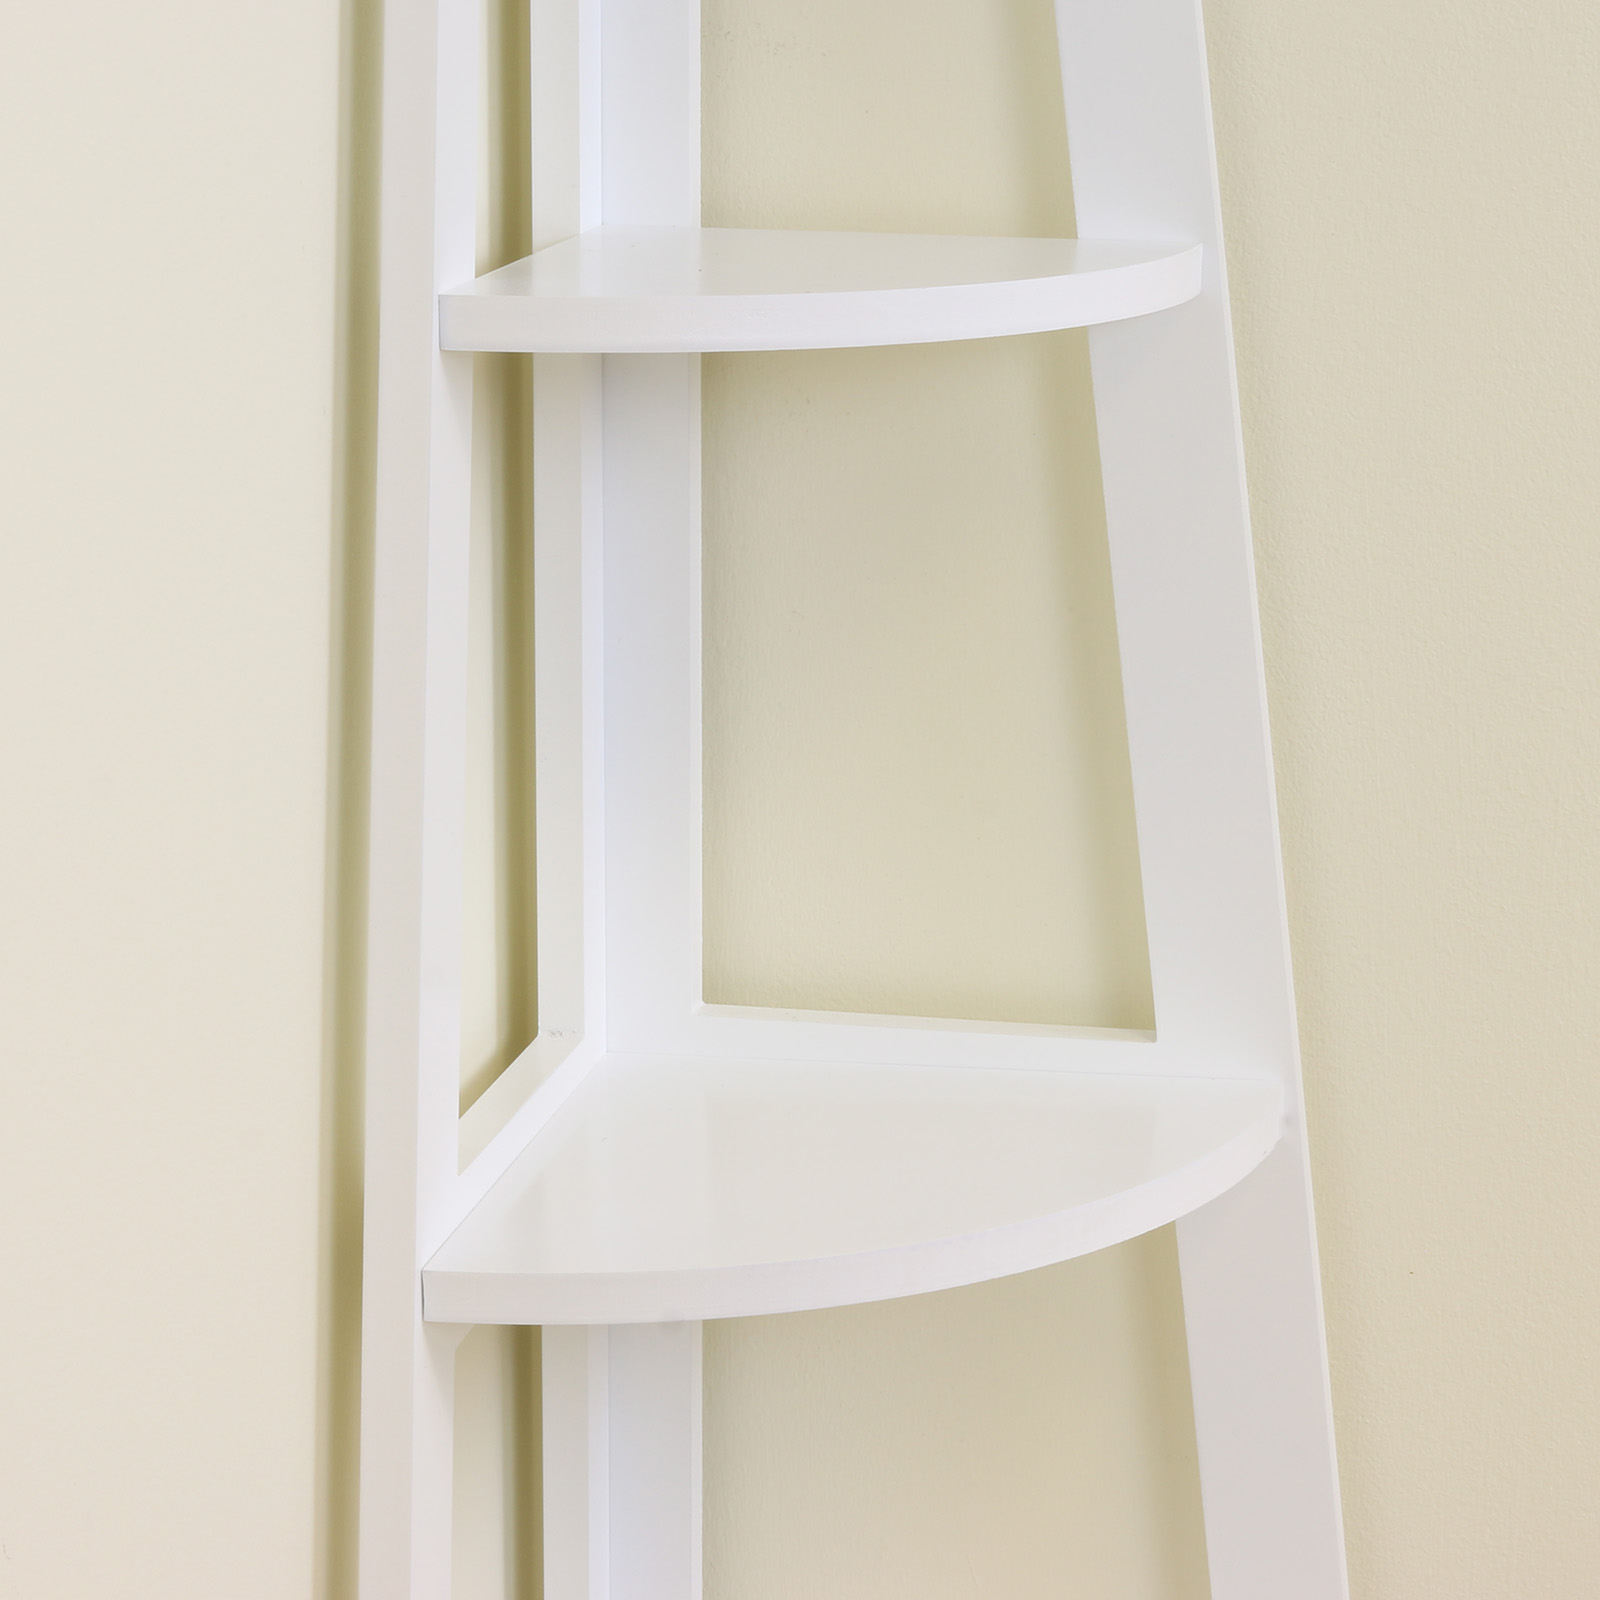 White 5 Tier Tall Corner Shelf Shelving Unit Display Stand